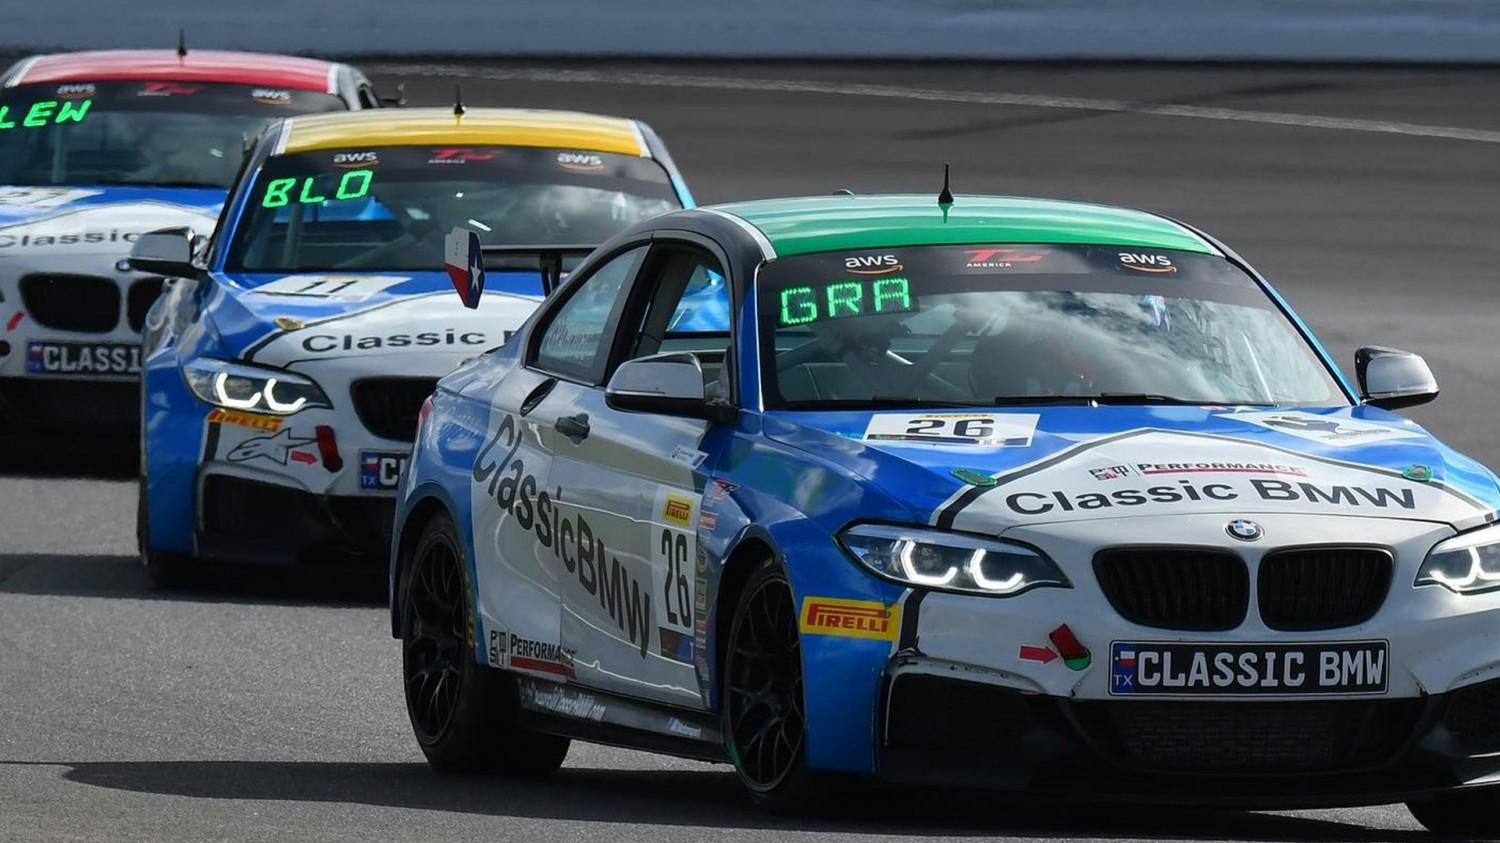 Fast Track Racing/Classic BMW Team Debuts New BMW M2 TCX This Weekend in TC America Season Opener at Sonoma Raceway